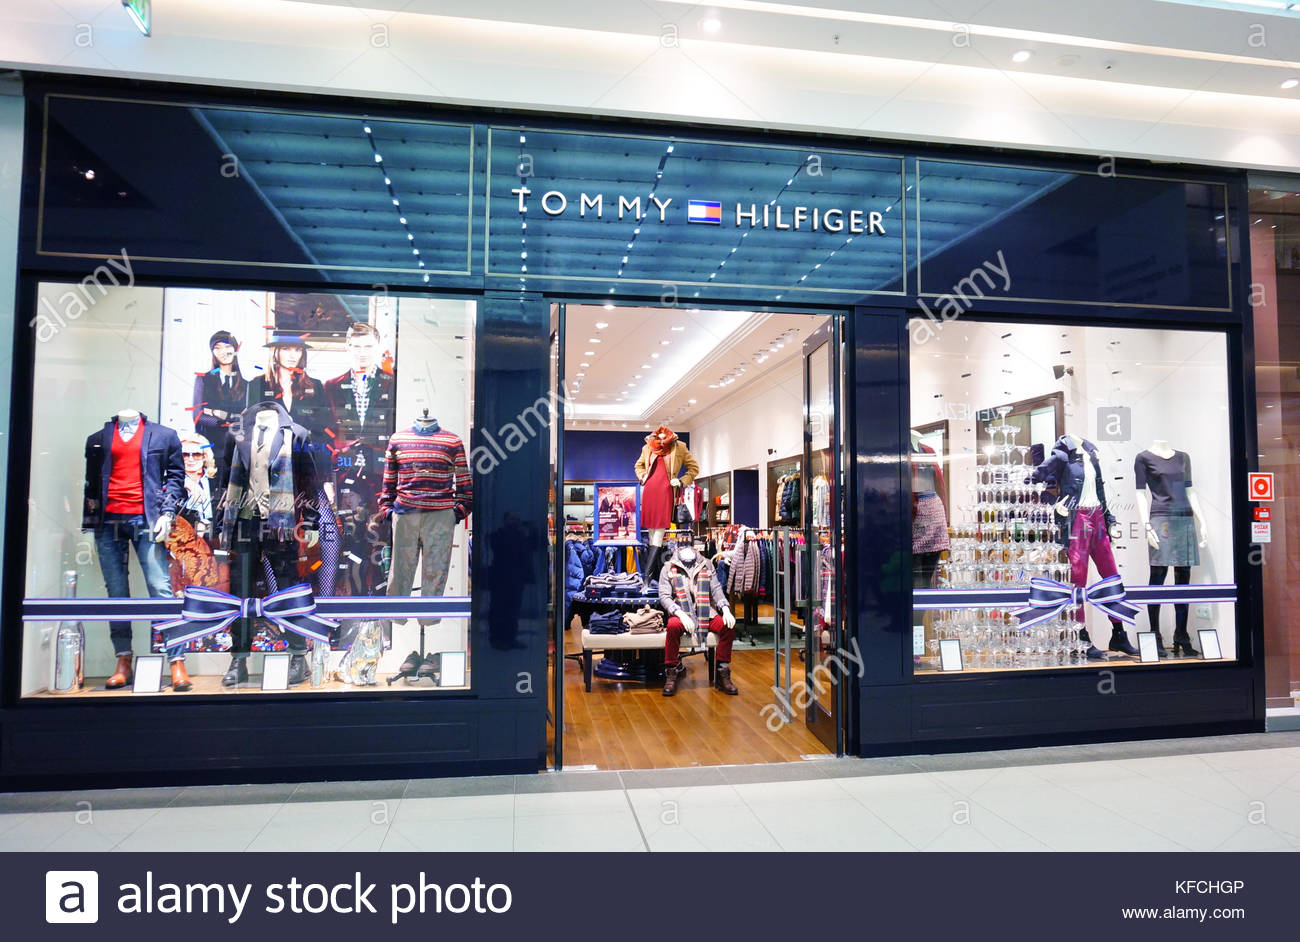 449c95e3 POZNAN, POLAND - NOVEMBER 29, 2013: Entrance to a Tommy Hilfiger clothing  store